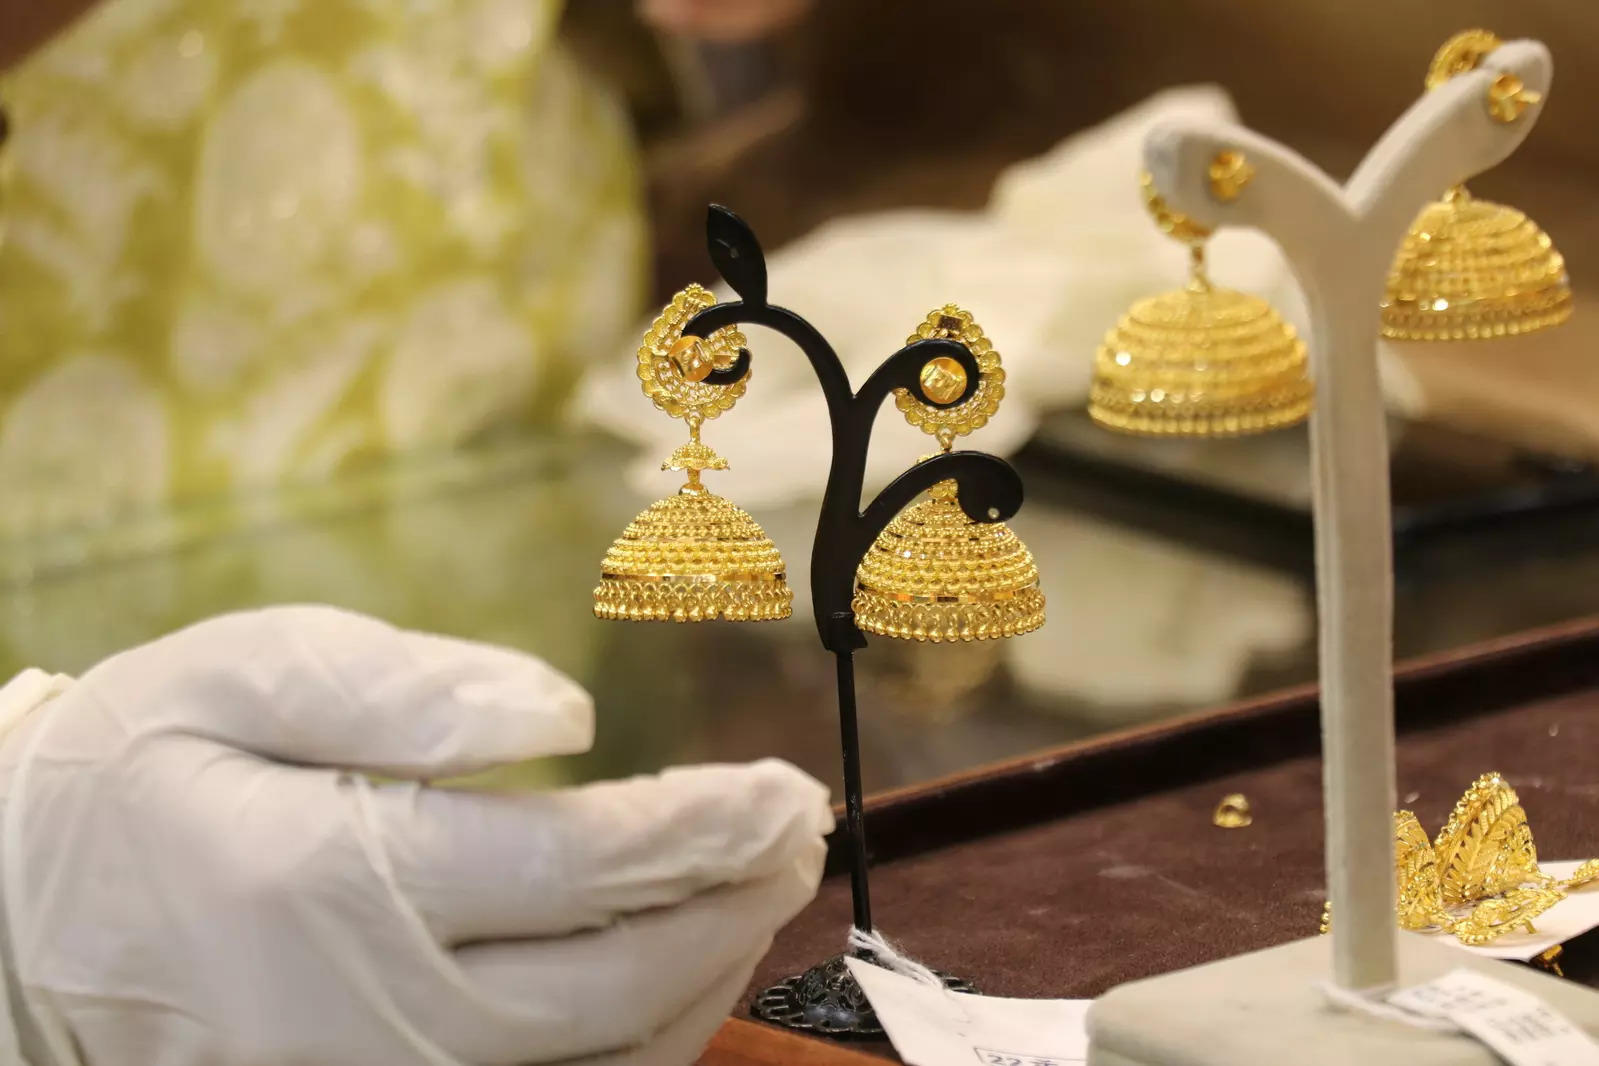 Pandemic's second wave threatens to derail jewellery sector in Rajasthan